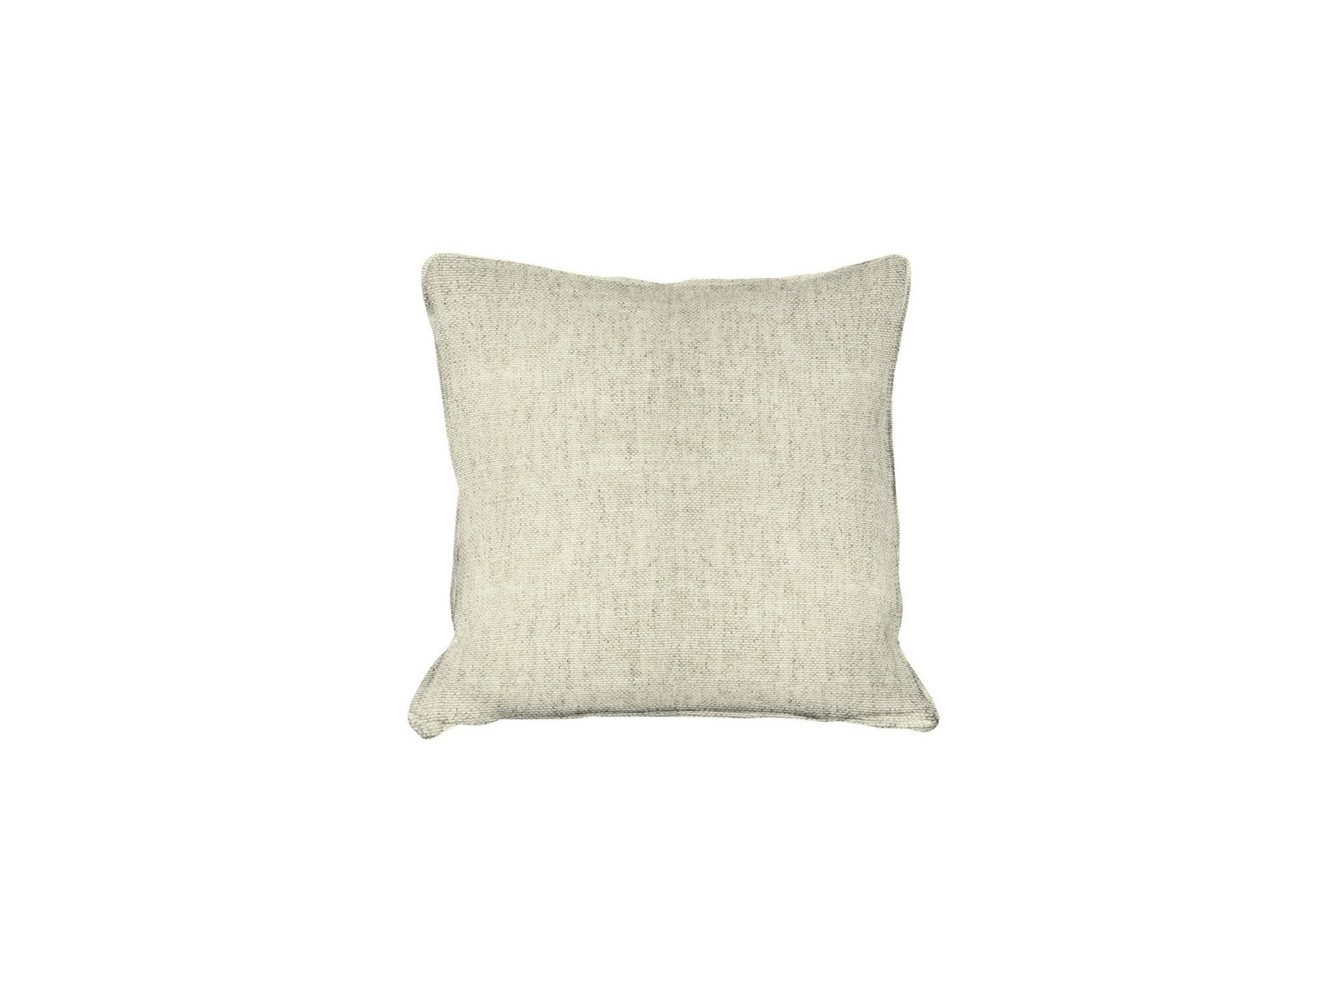 Extra Scatter Cushions - Fabric Porcelain